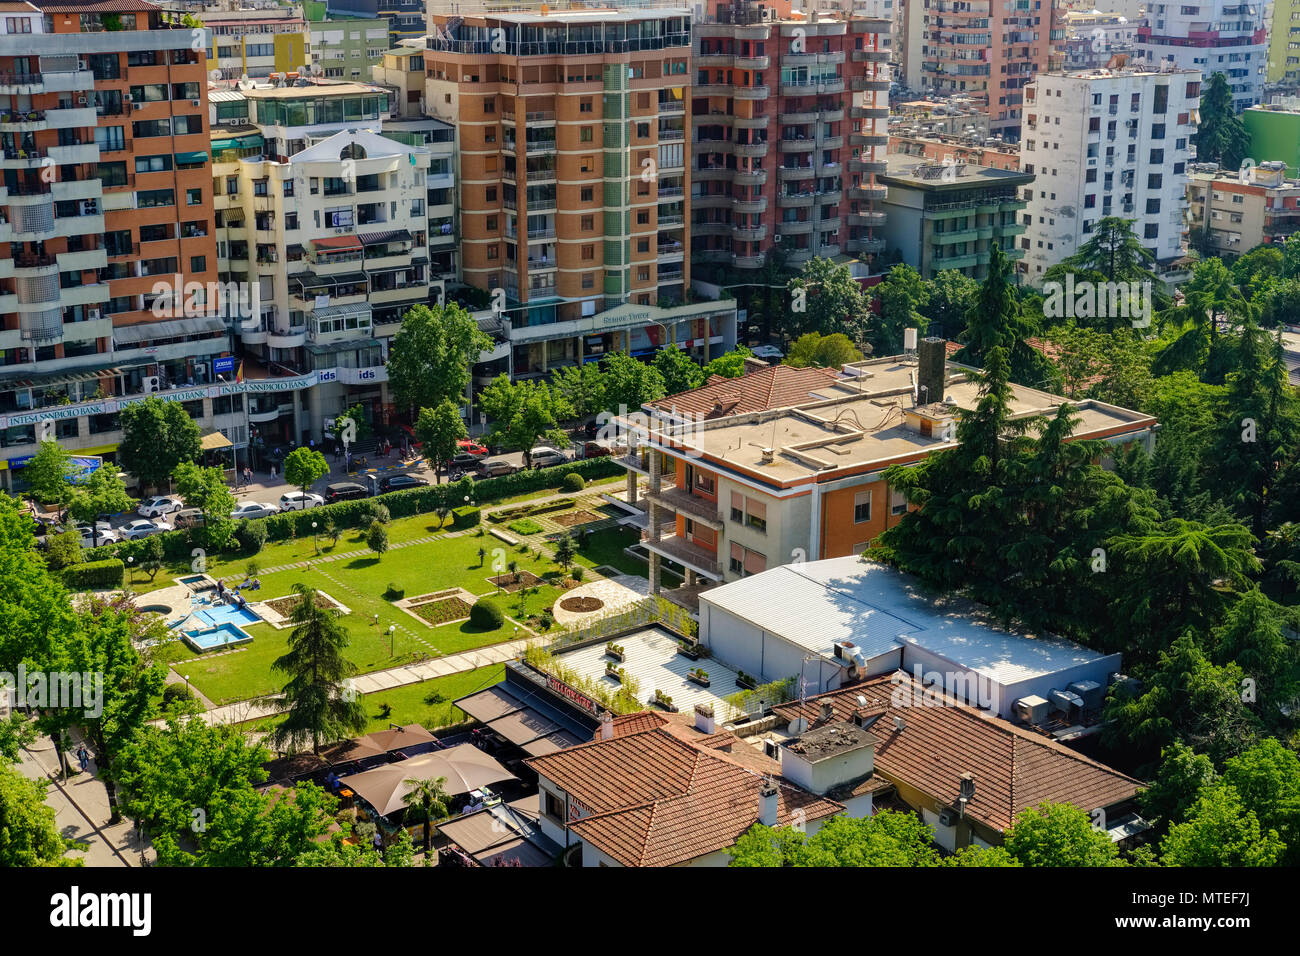 Villa of Enver Hoxha, 1944 to 1985 dictator of the Socialist People's Republic of Albania, Blloku district, Tirana, Albania - Stock Image